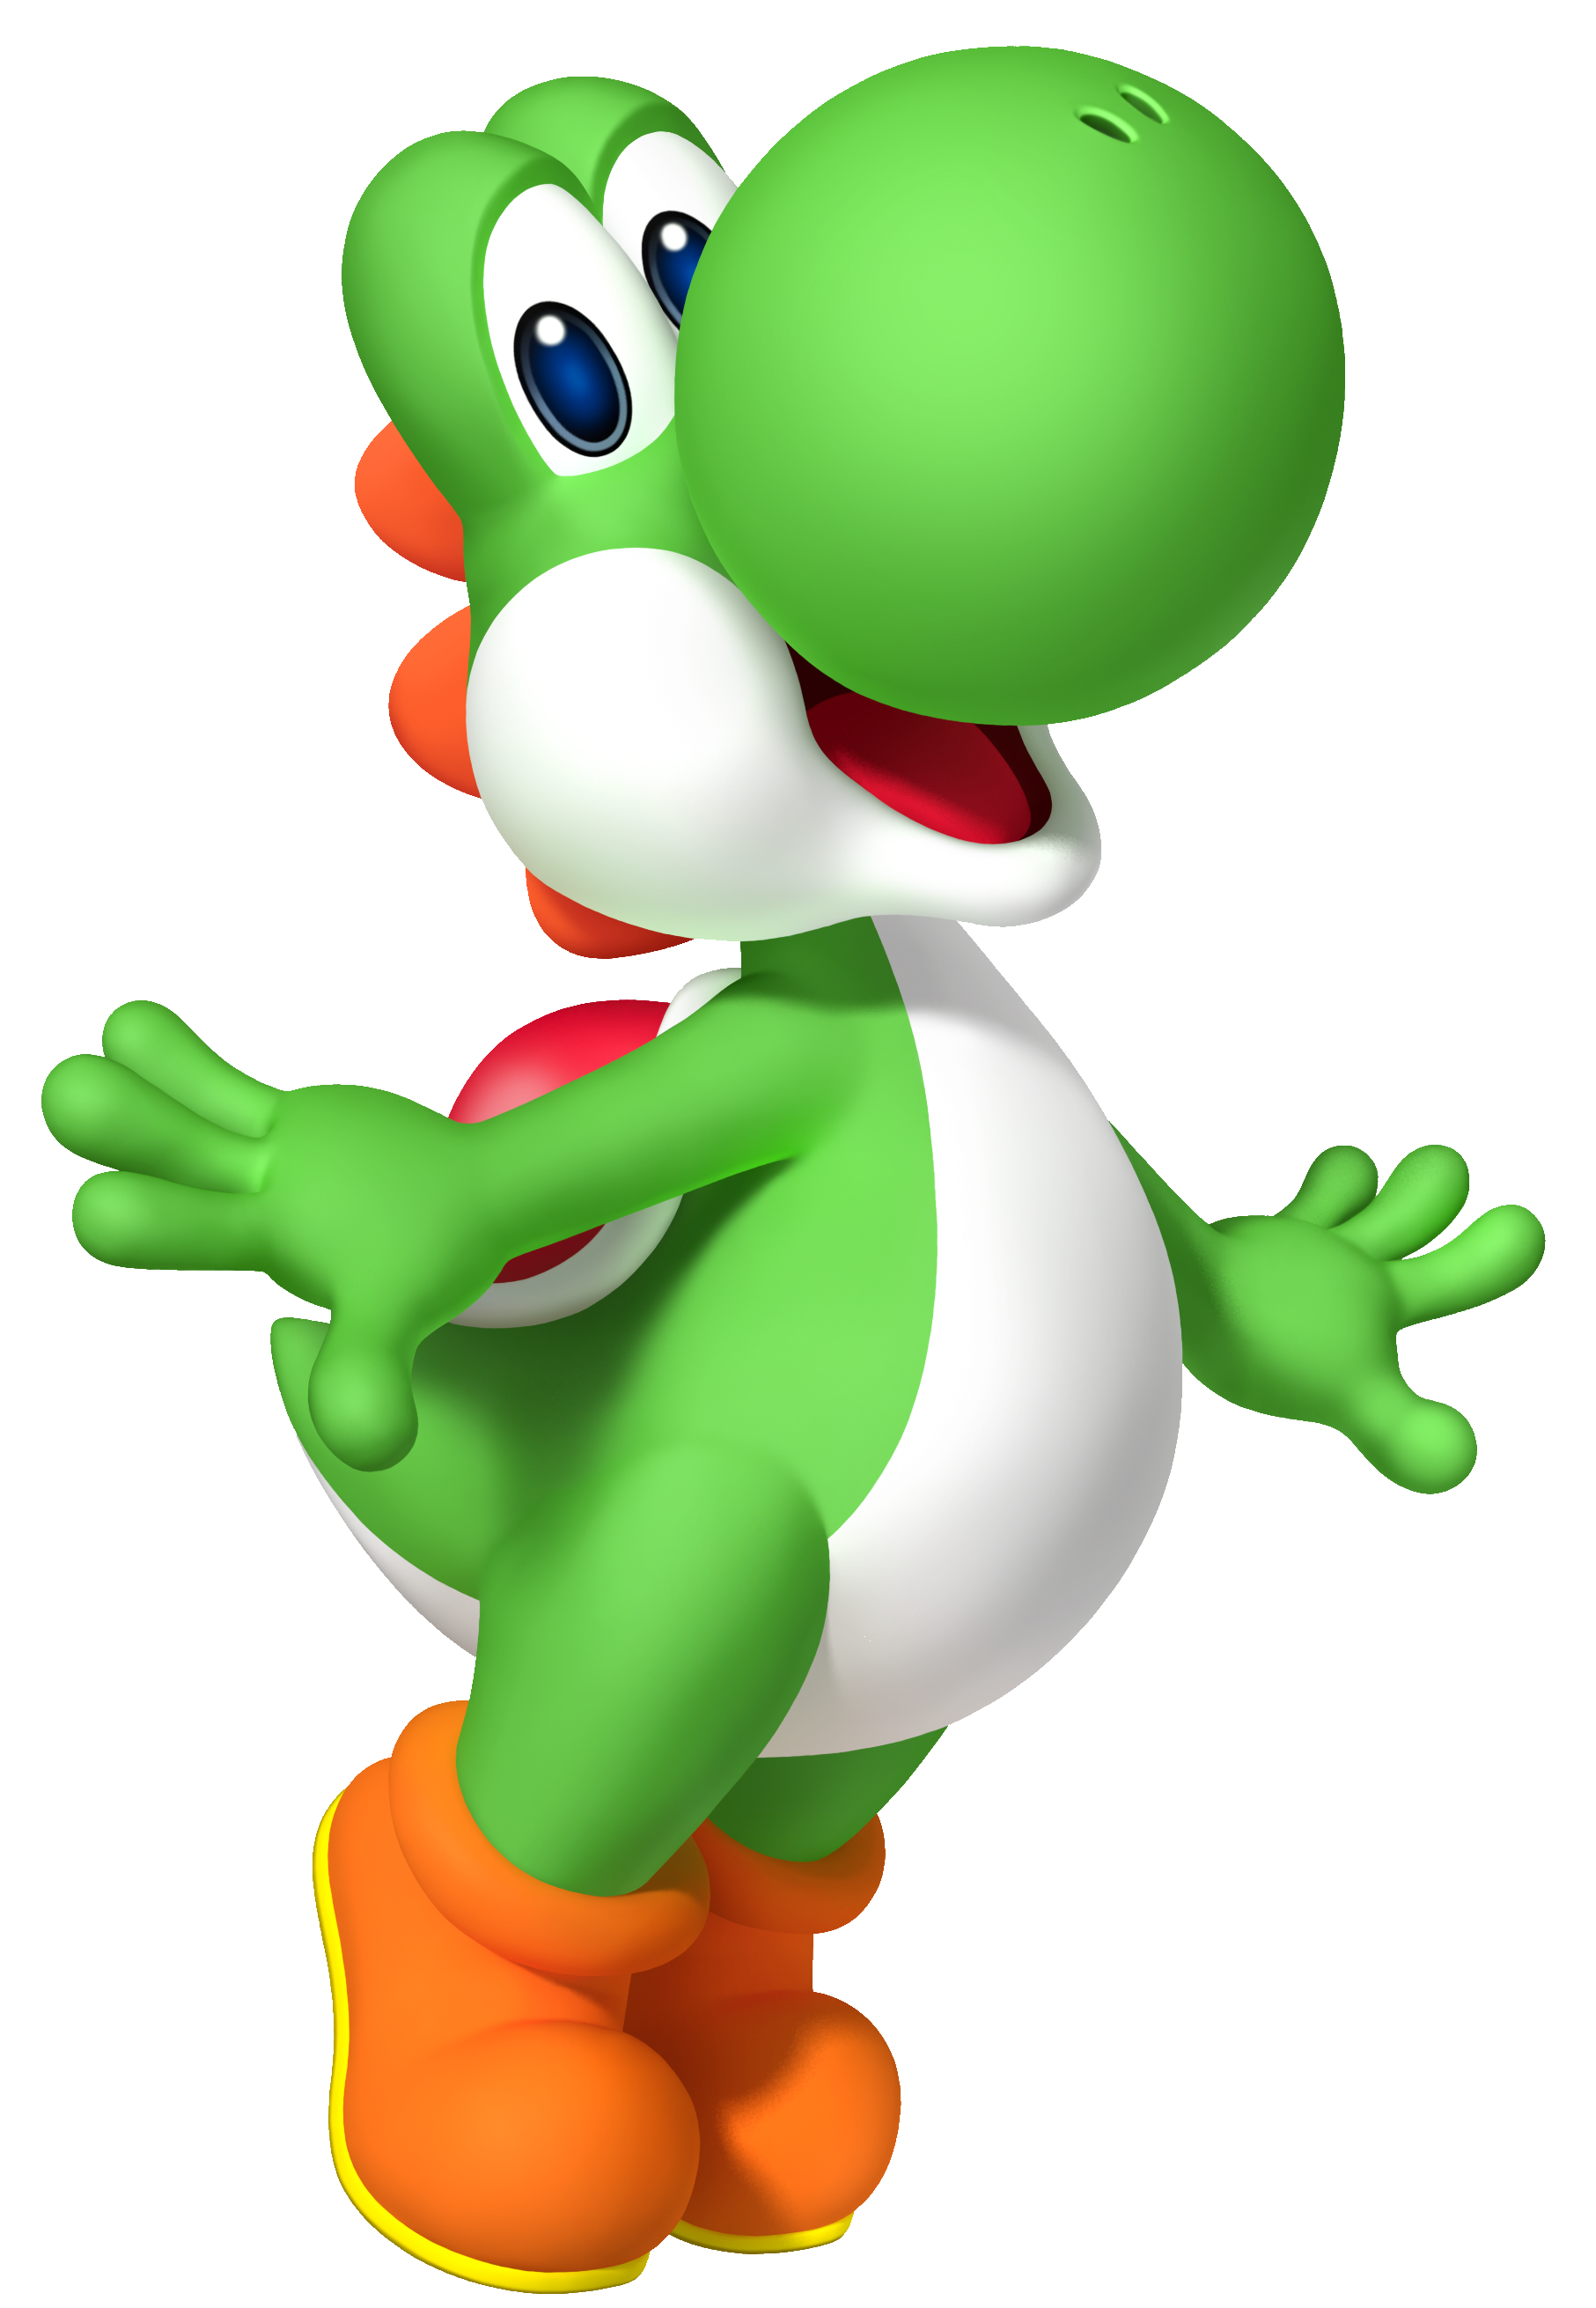 super mario world 2 yoshis island hookbill the koopa Images and sounds of the characters from super mario world super mario bros characters on btva: 222% (2 votes) yoshi: 222% (2 votes) princess toadstool:.